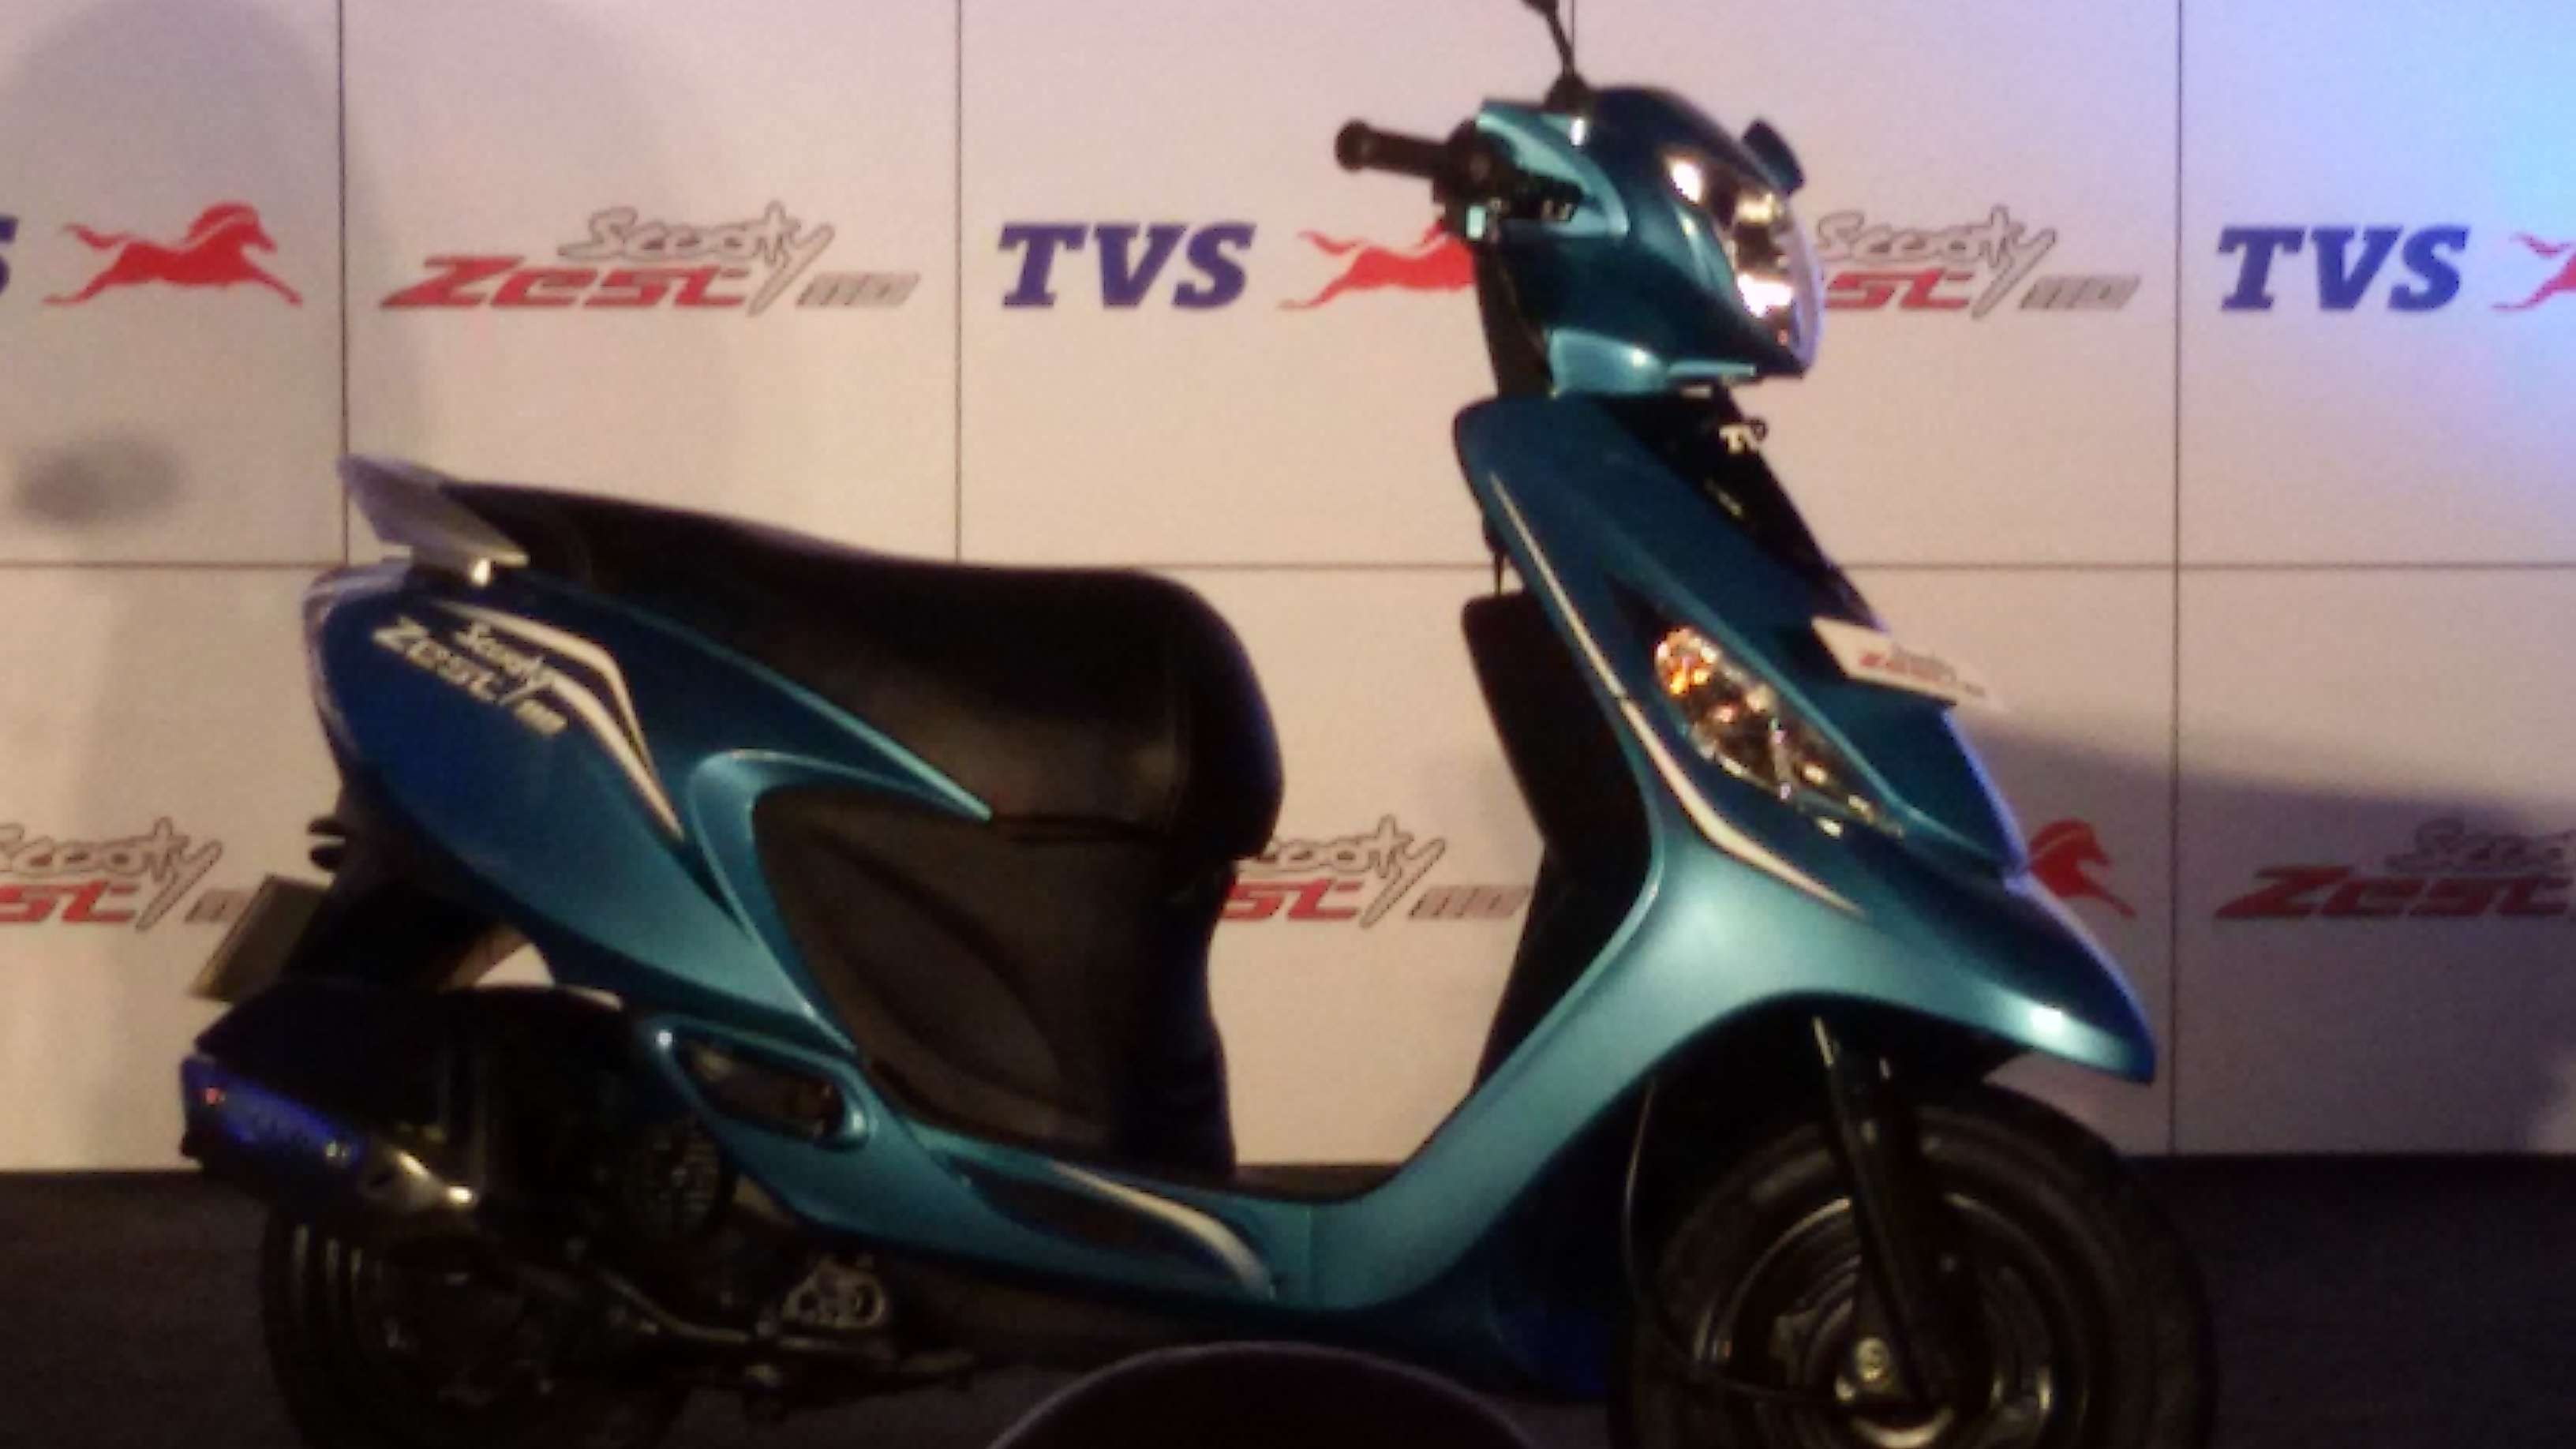 new launched car zestTVS launches Scooty Zest 110 at Rs 42300 in New Delhi Auto News